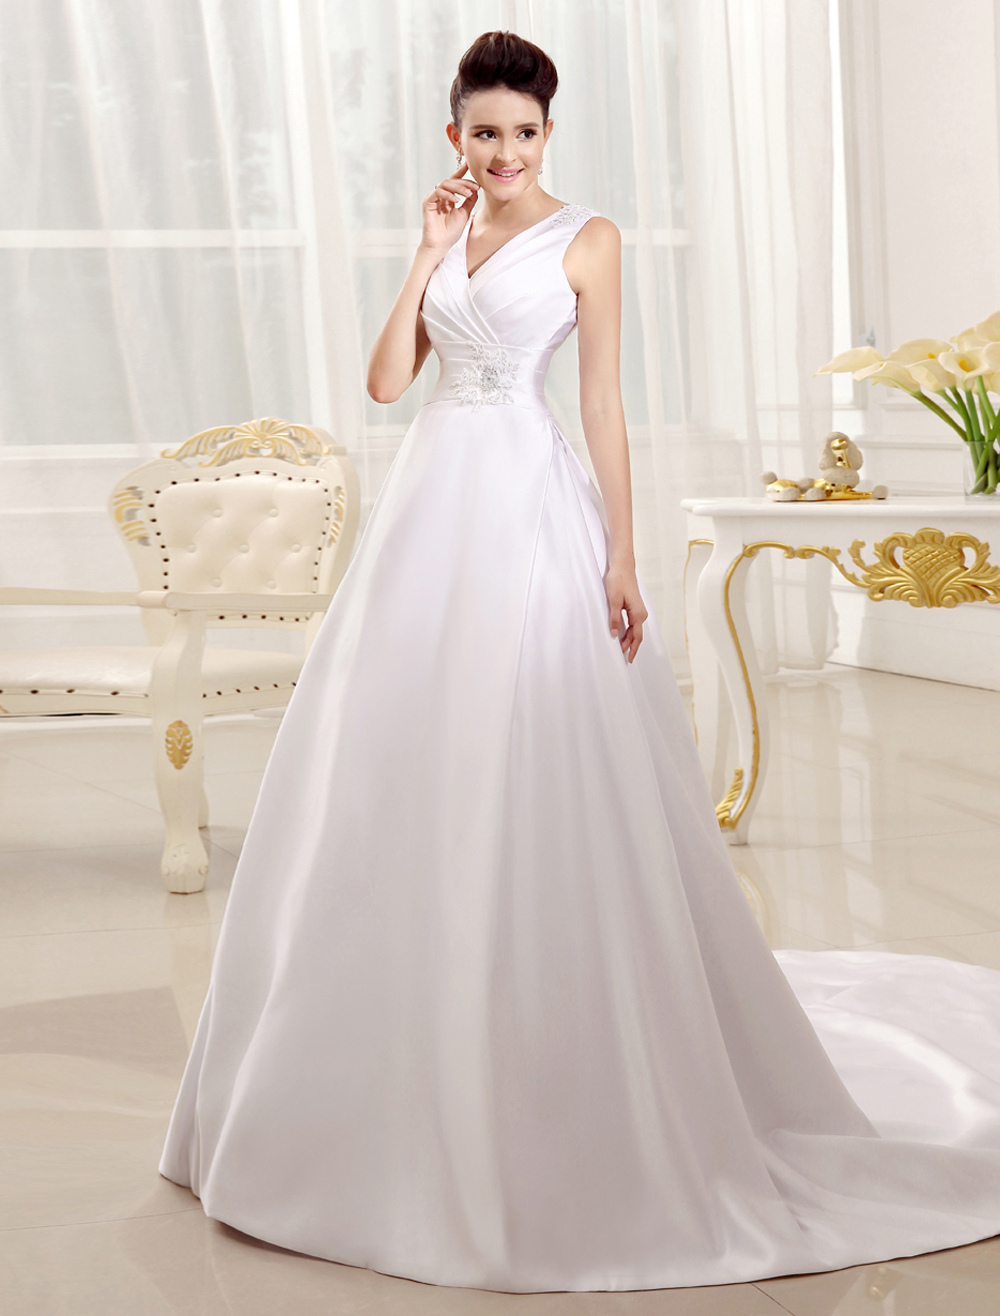 White Chapel Train Bridal Wedding Dress with V-Neck A-line Ruched